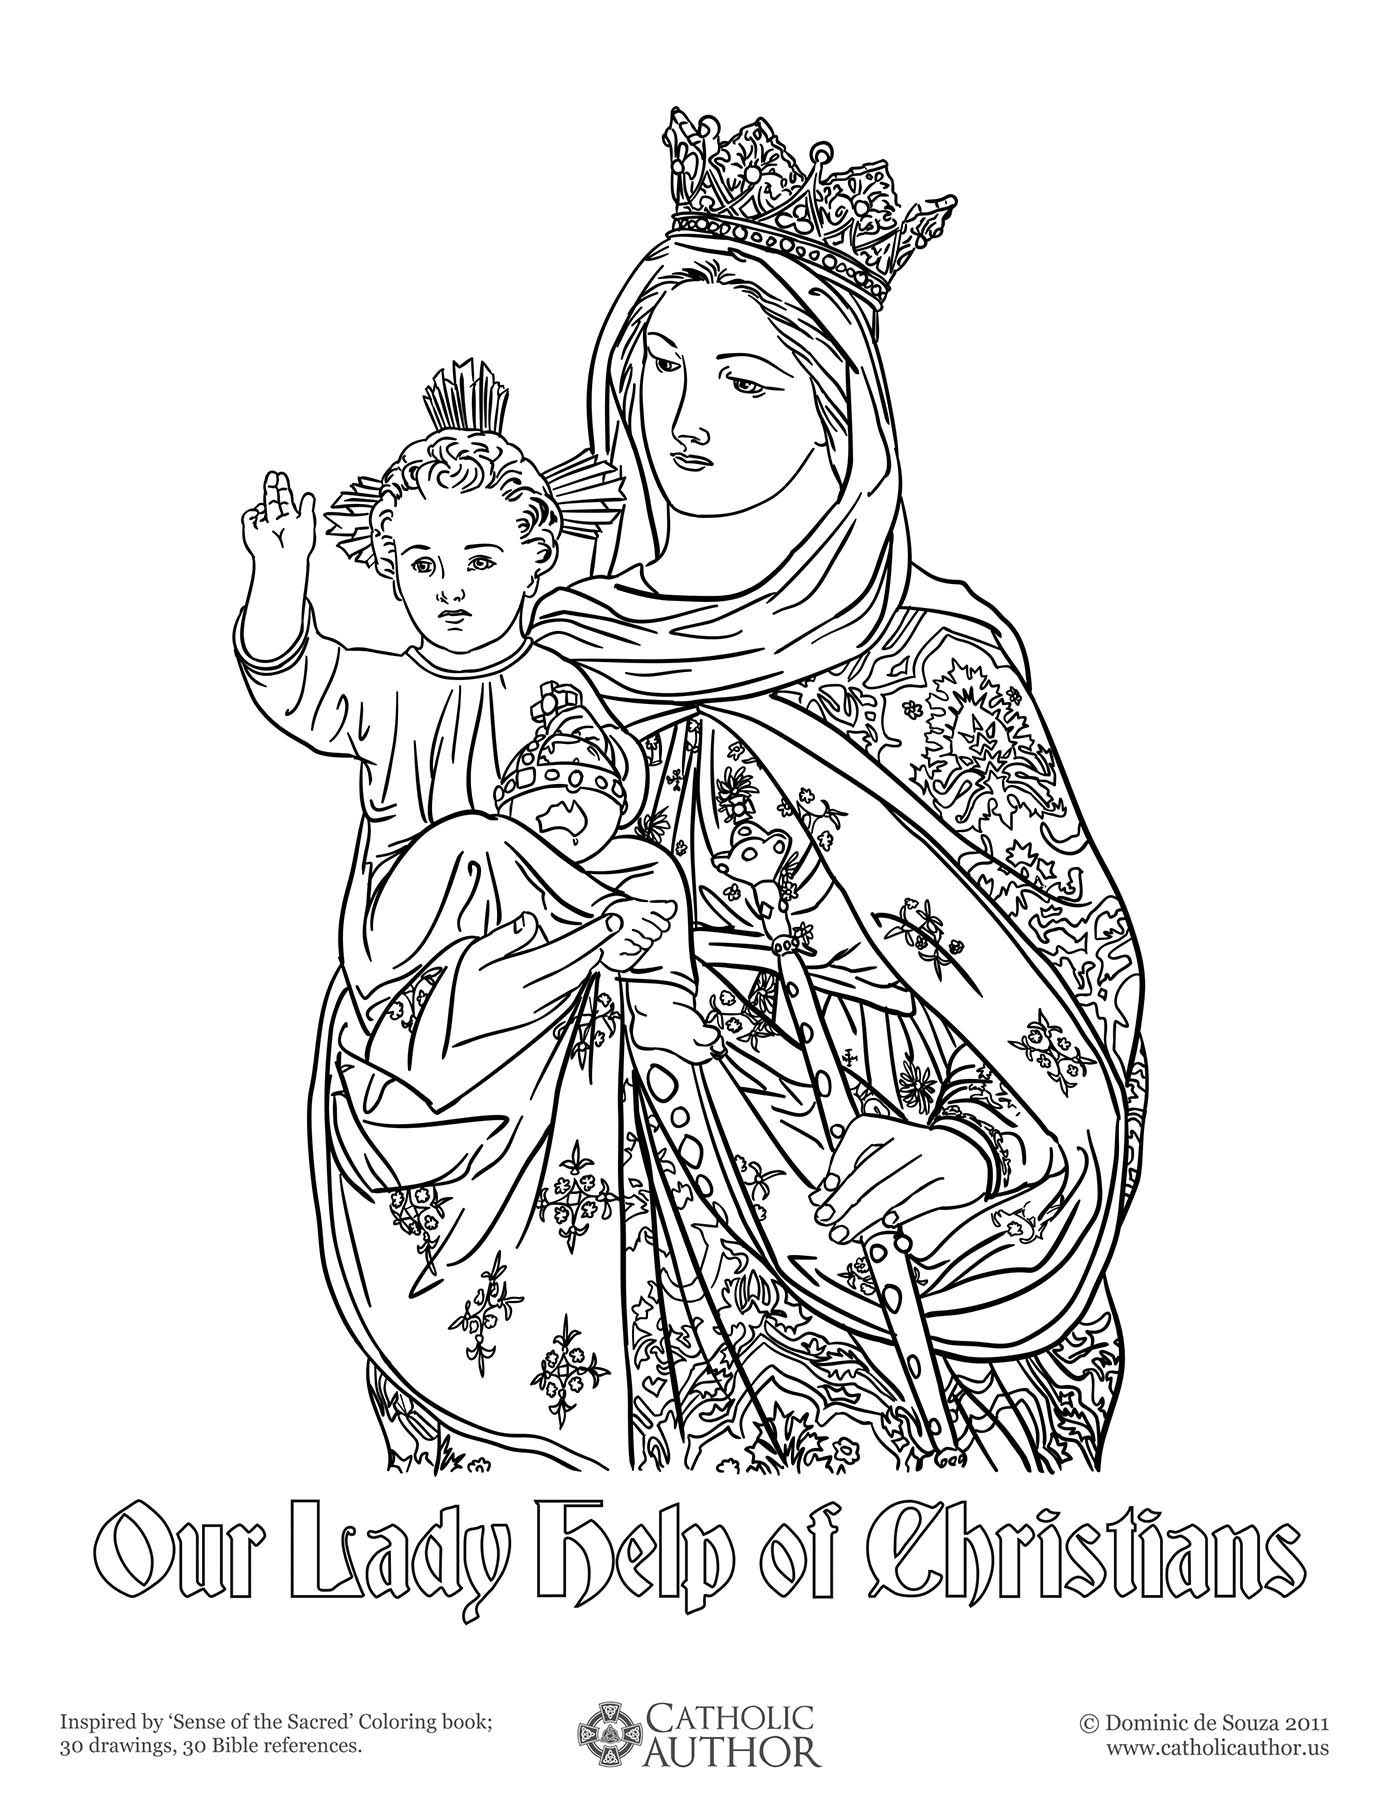 Our Lady Help of Christians - Free Hand-Drawn Catholic Coloring ...